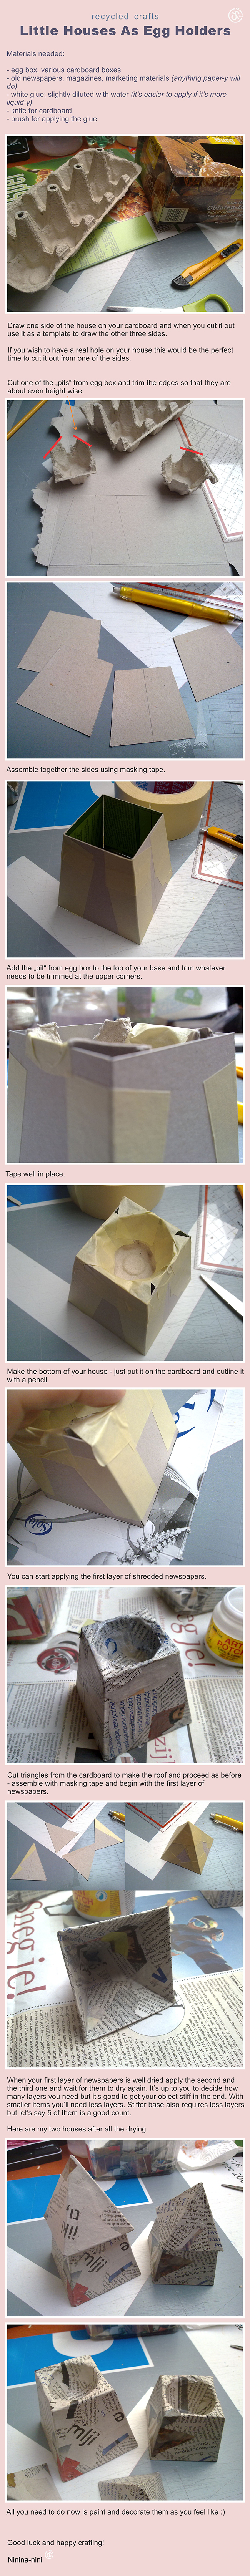 Making of Egg Houses Which Are Egg Holders by Ninina-nini